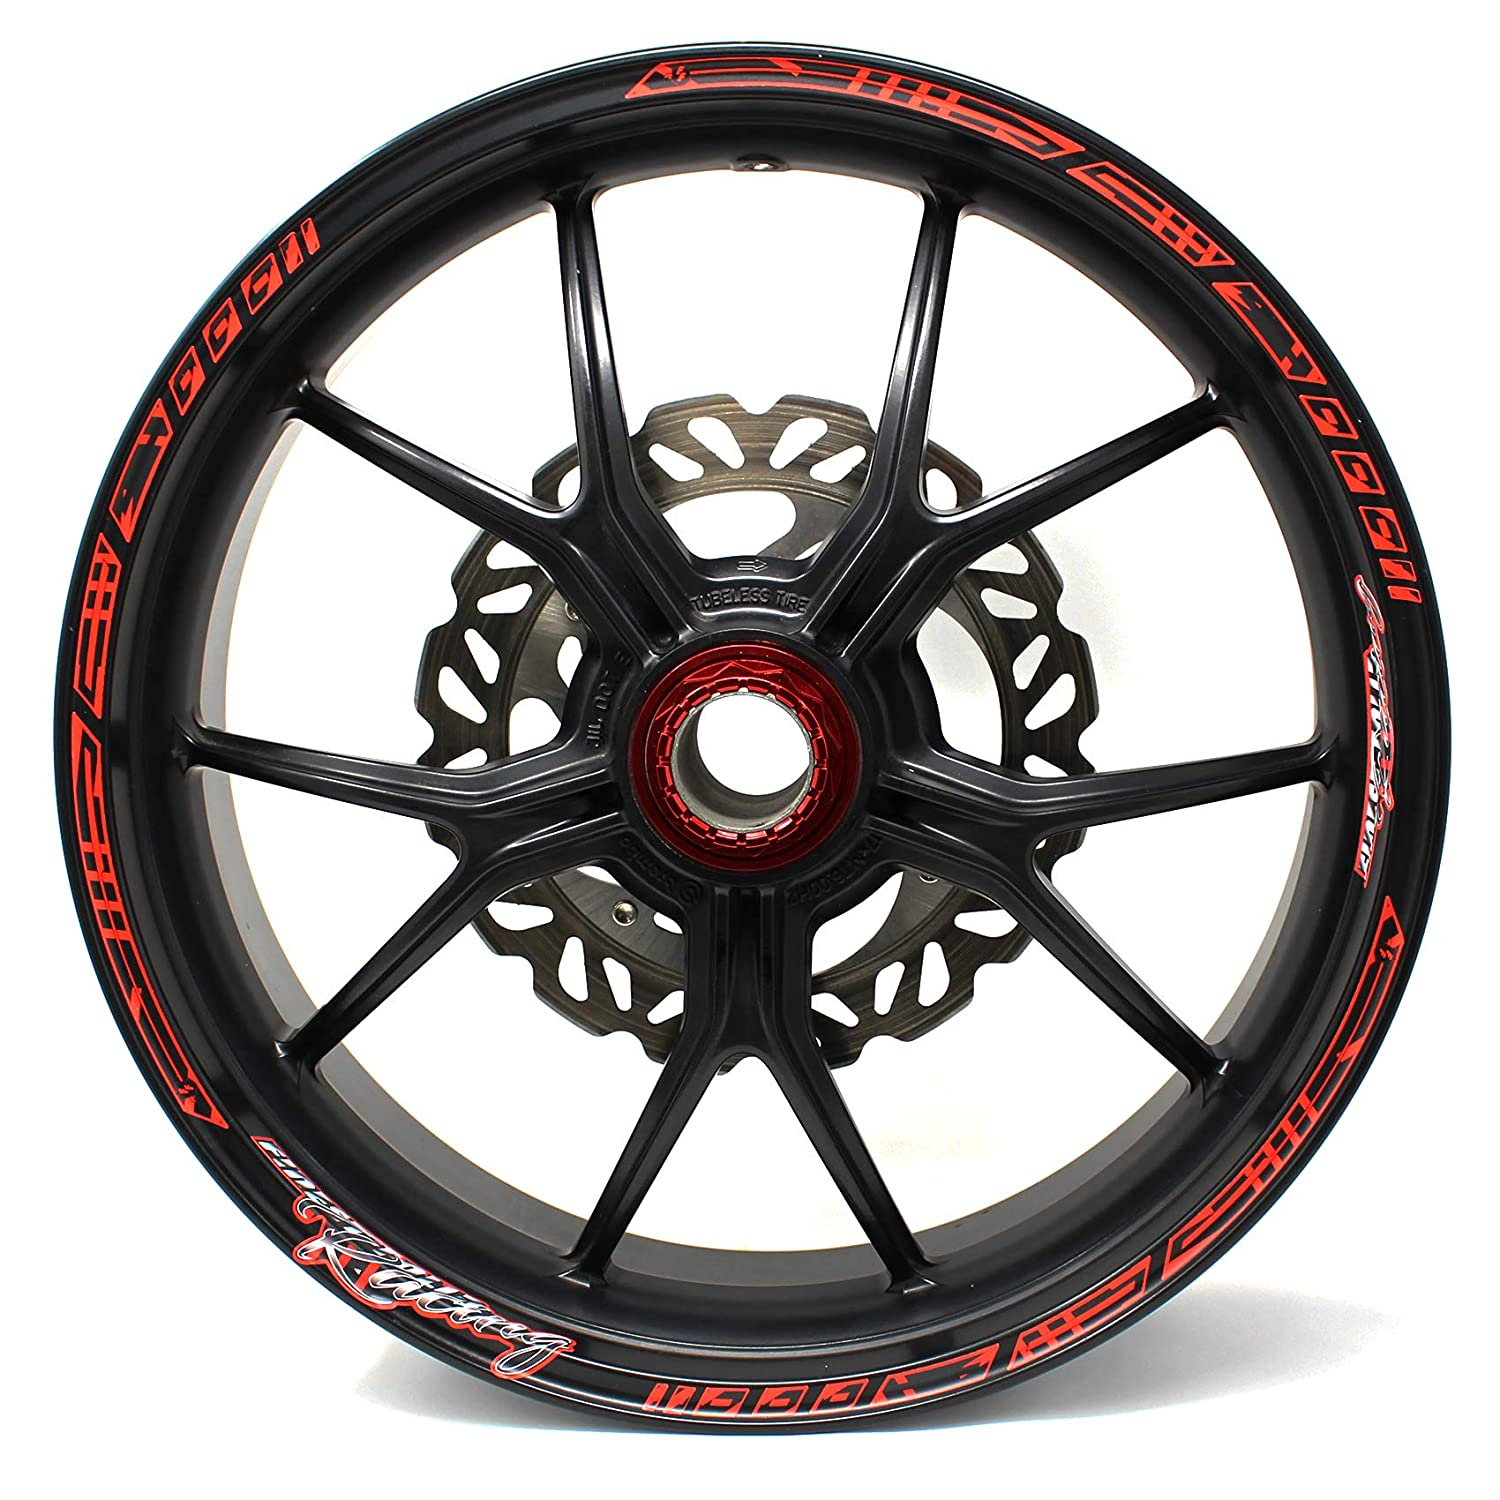 Fits 17 inch /& 16 18 19 Rims Rim Well Decal Motorcycle Car Bicycle Complete Set neon red, glossy Wheel Rim Design incl 18-piece Rim Edge Sticker Neon Line by Finest Folia